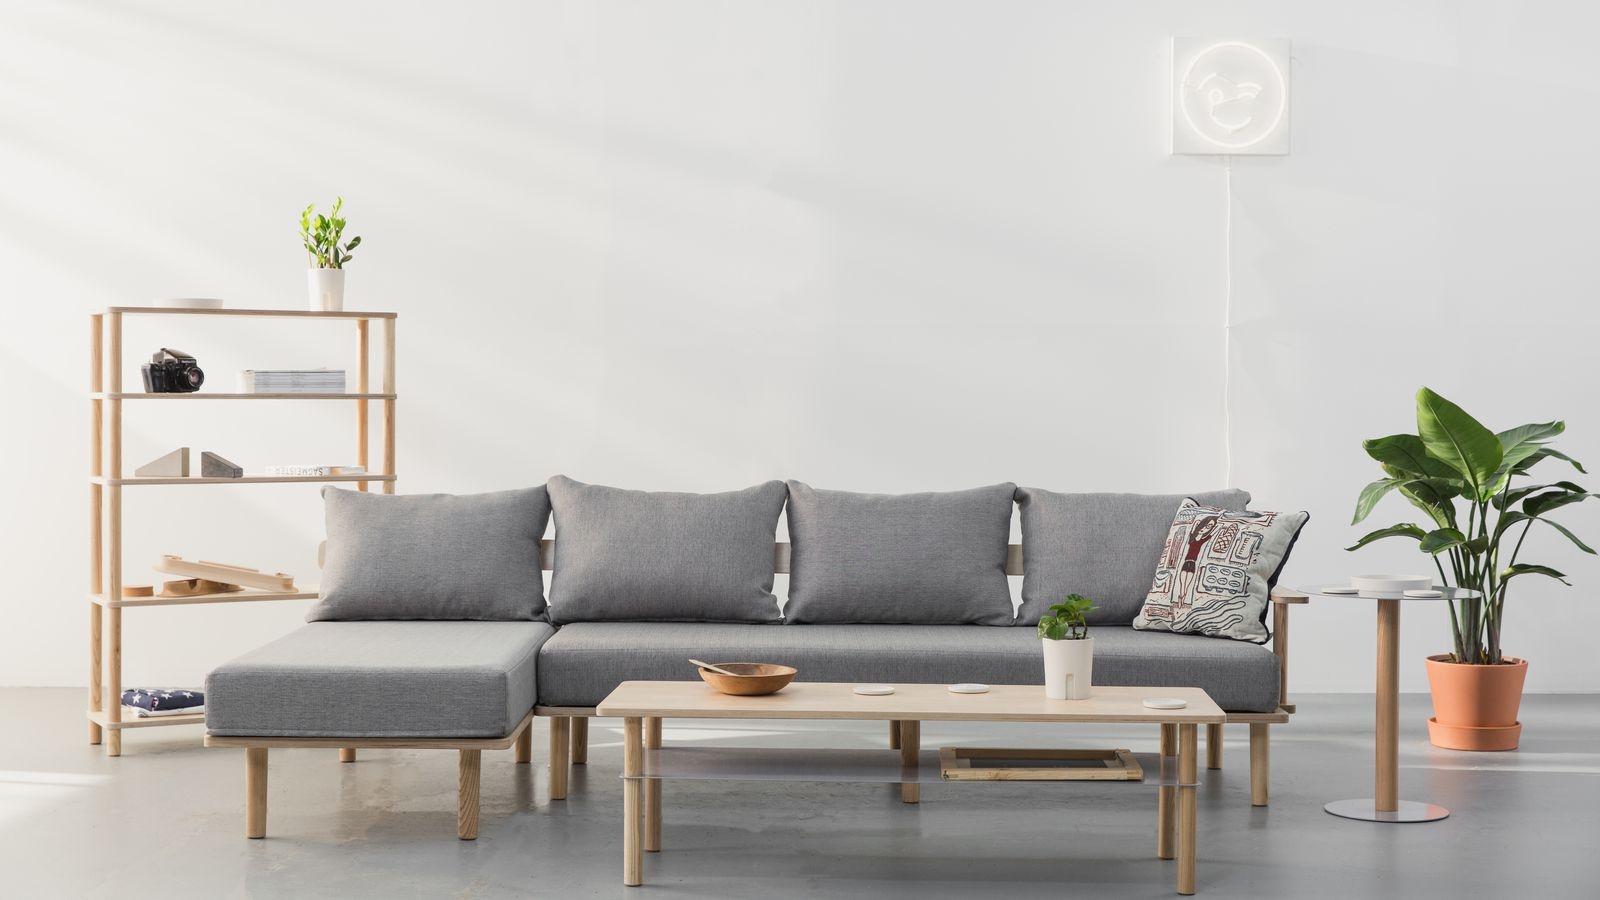 Ikea challenger greycork expands flatpack furniture for Affordable modern furniture new york city